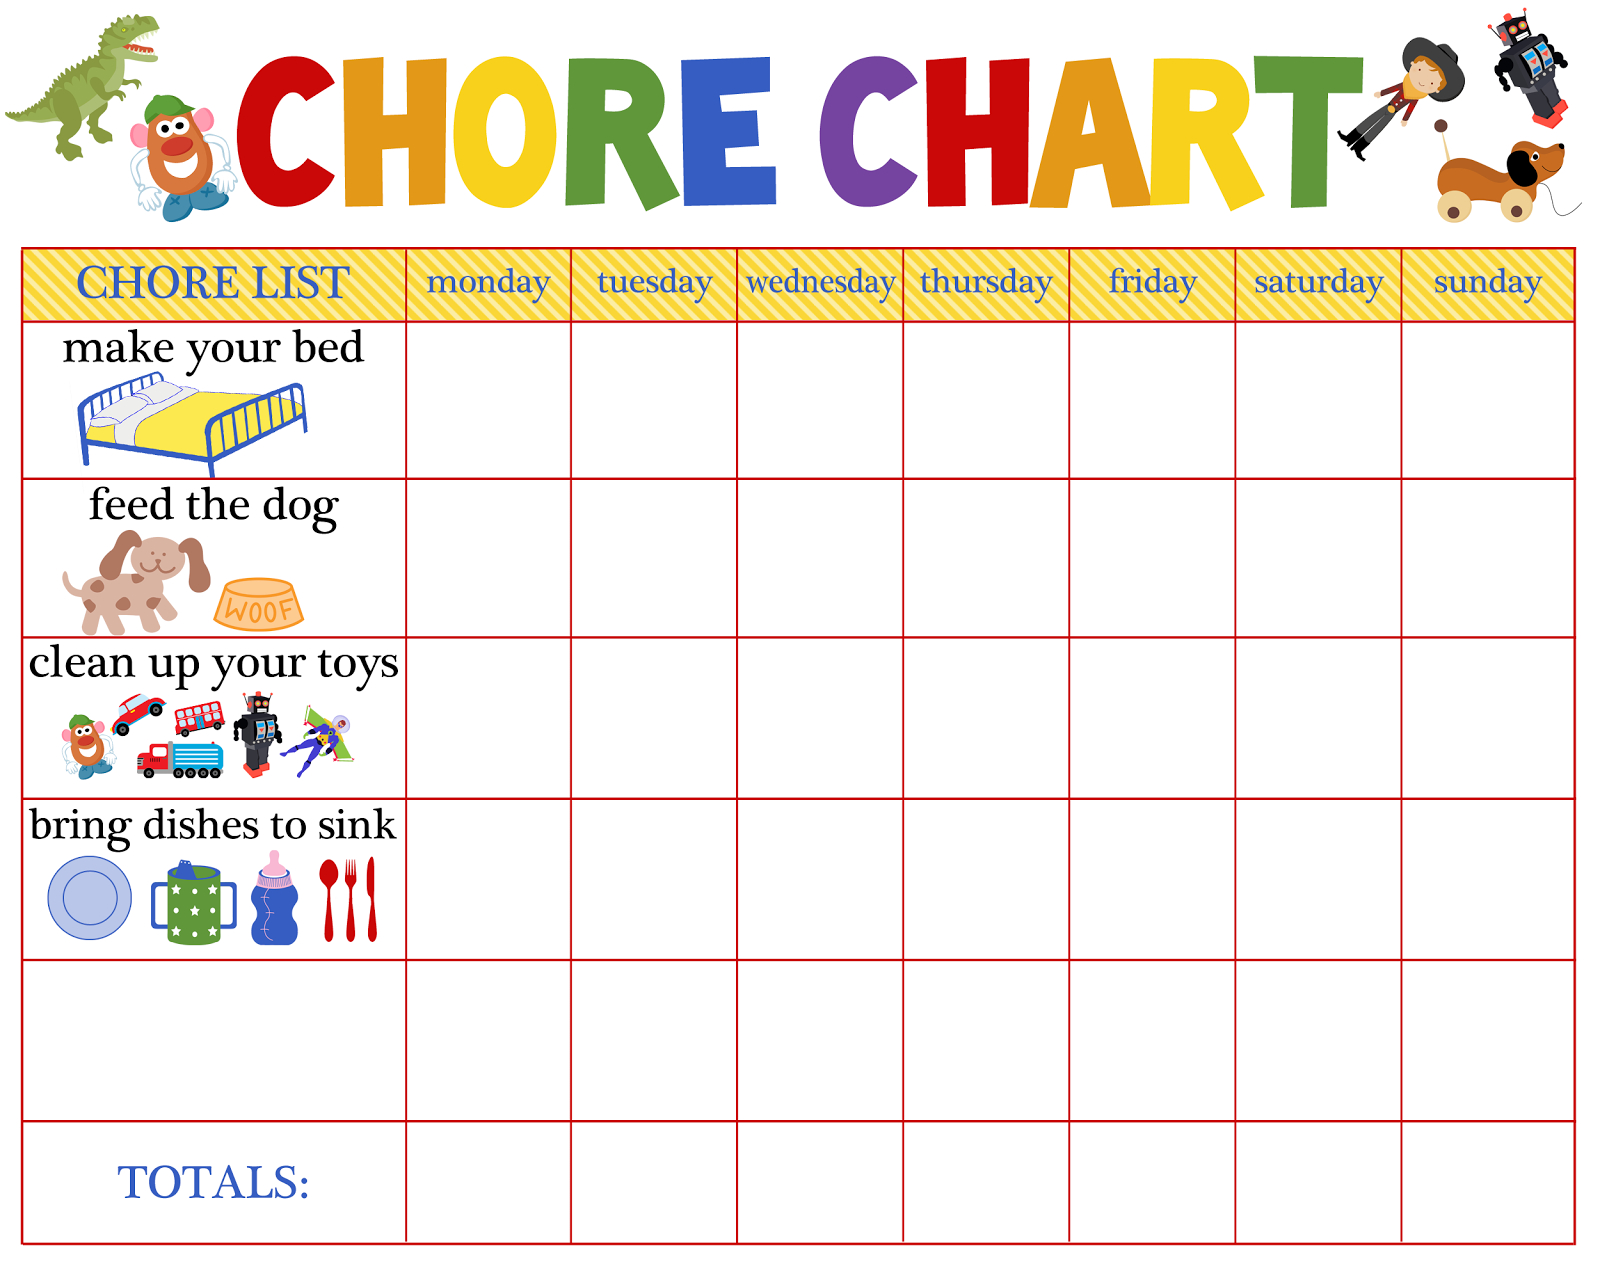 Live.life.lovely.: A Practical Solution To House Cleaning For Moms - Free Printable Toddler Chore Chart